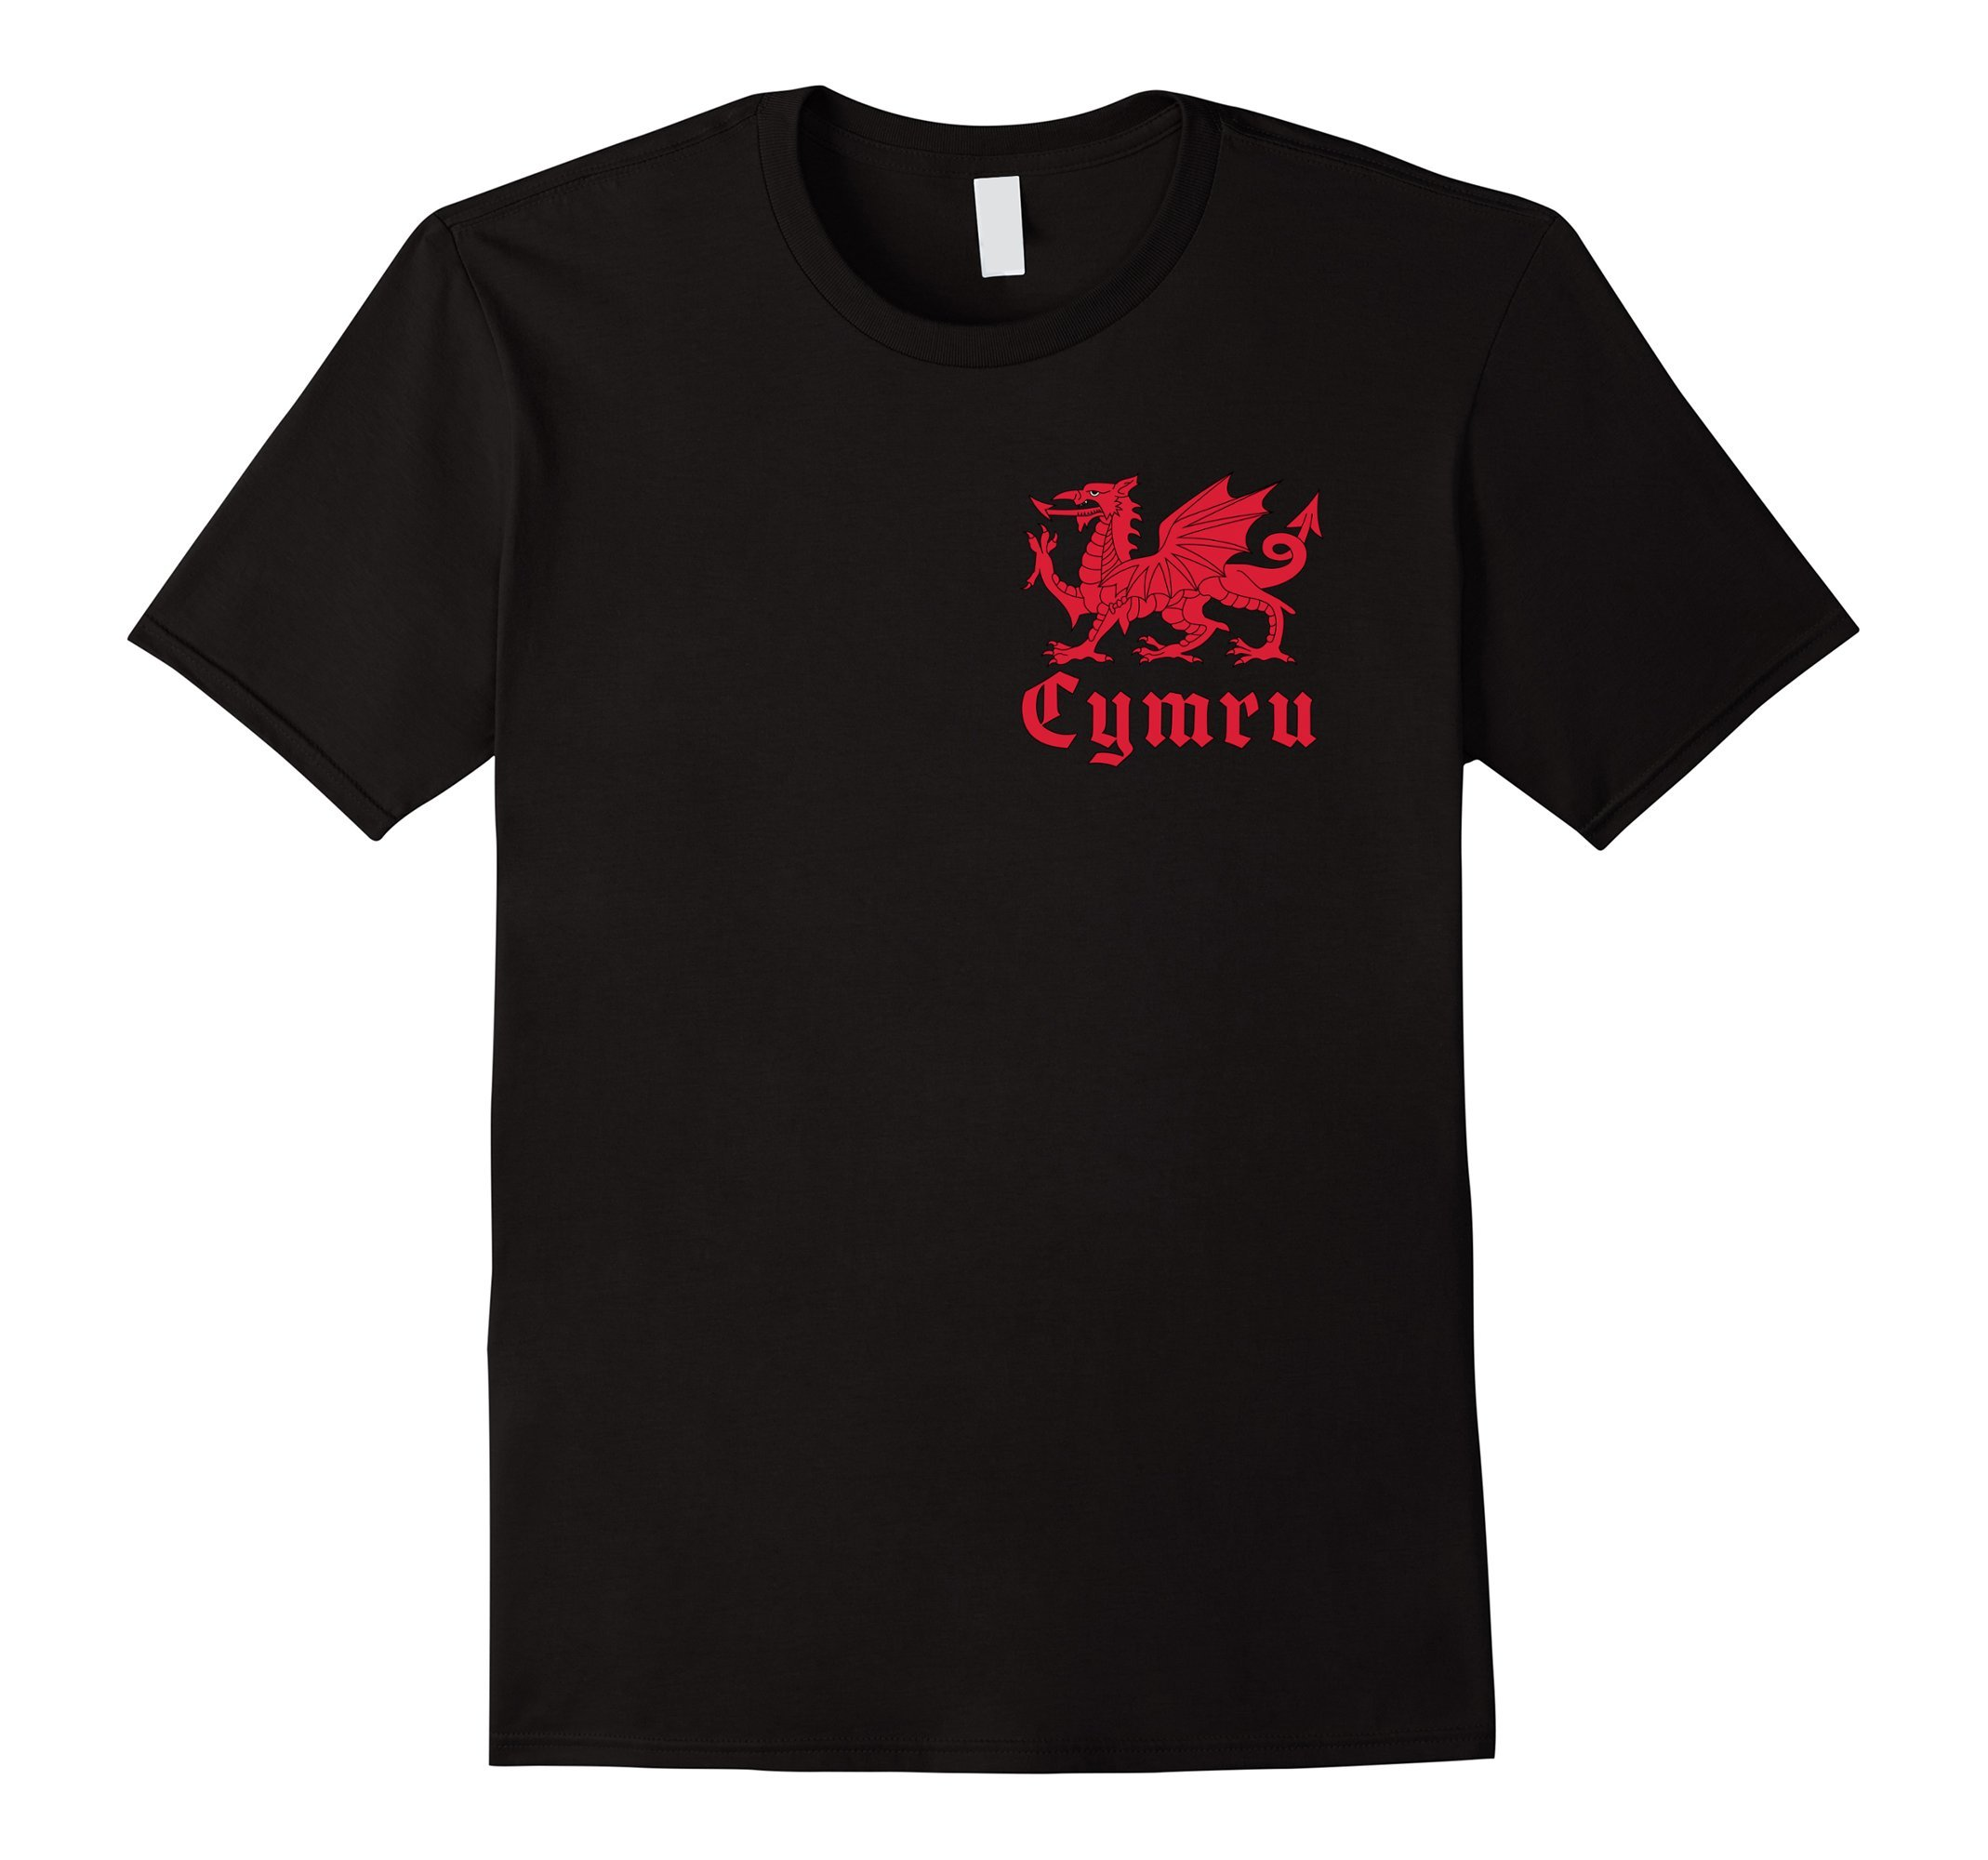 Mens Cymru Red Dragon of Wales Flag T-Shirt - Dark colors option Large Black